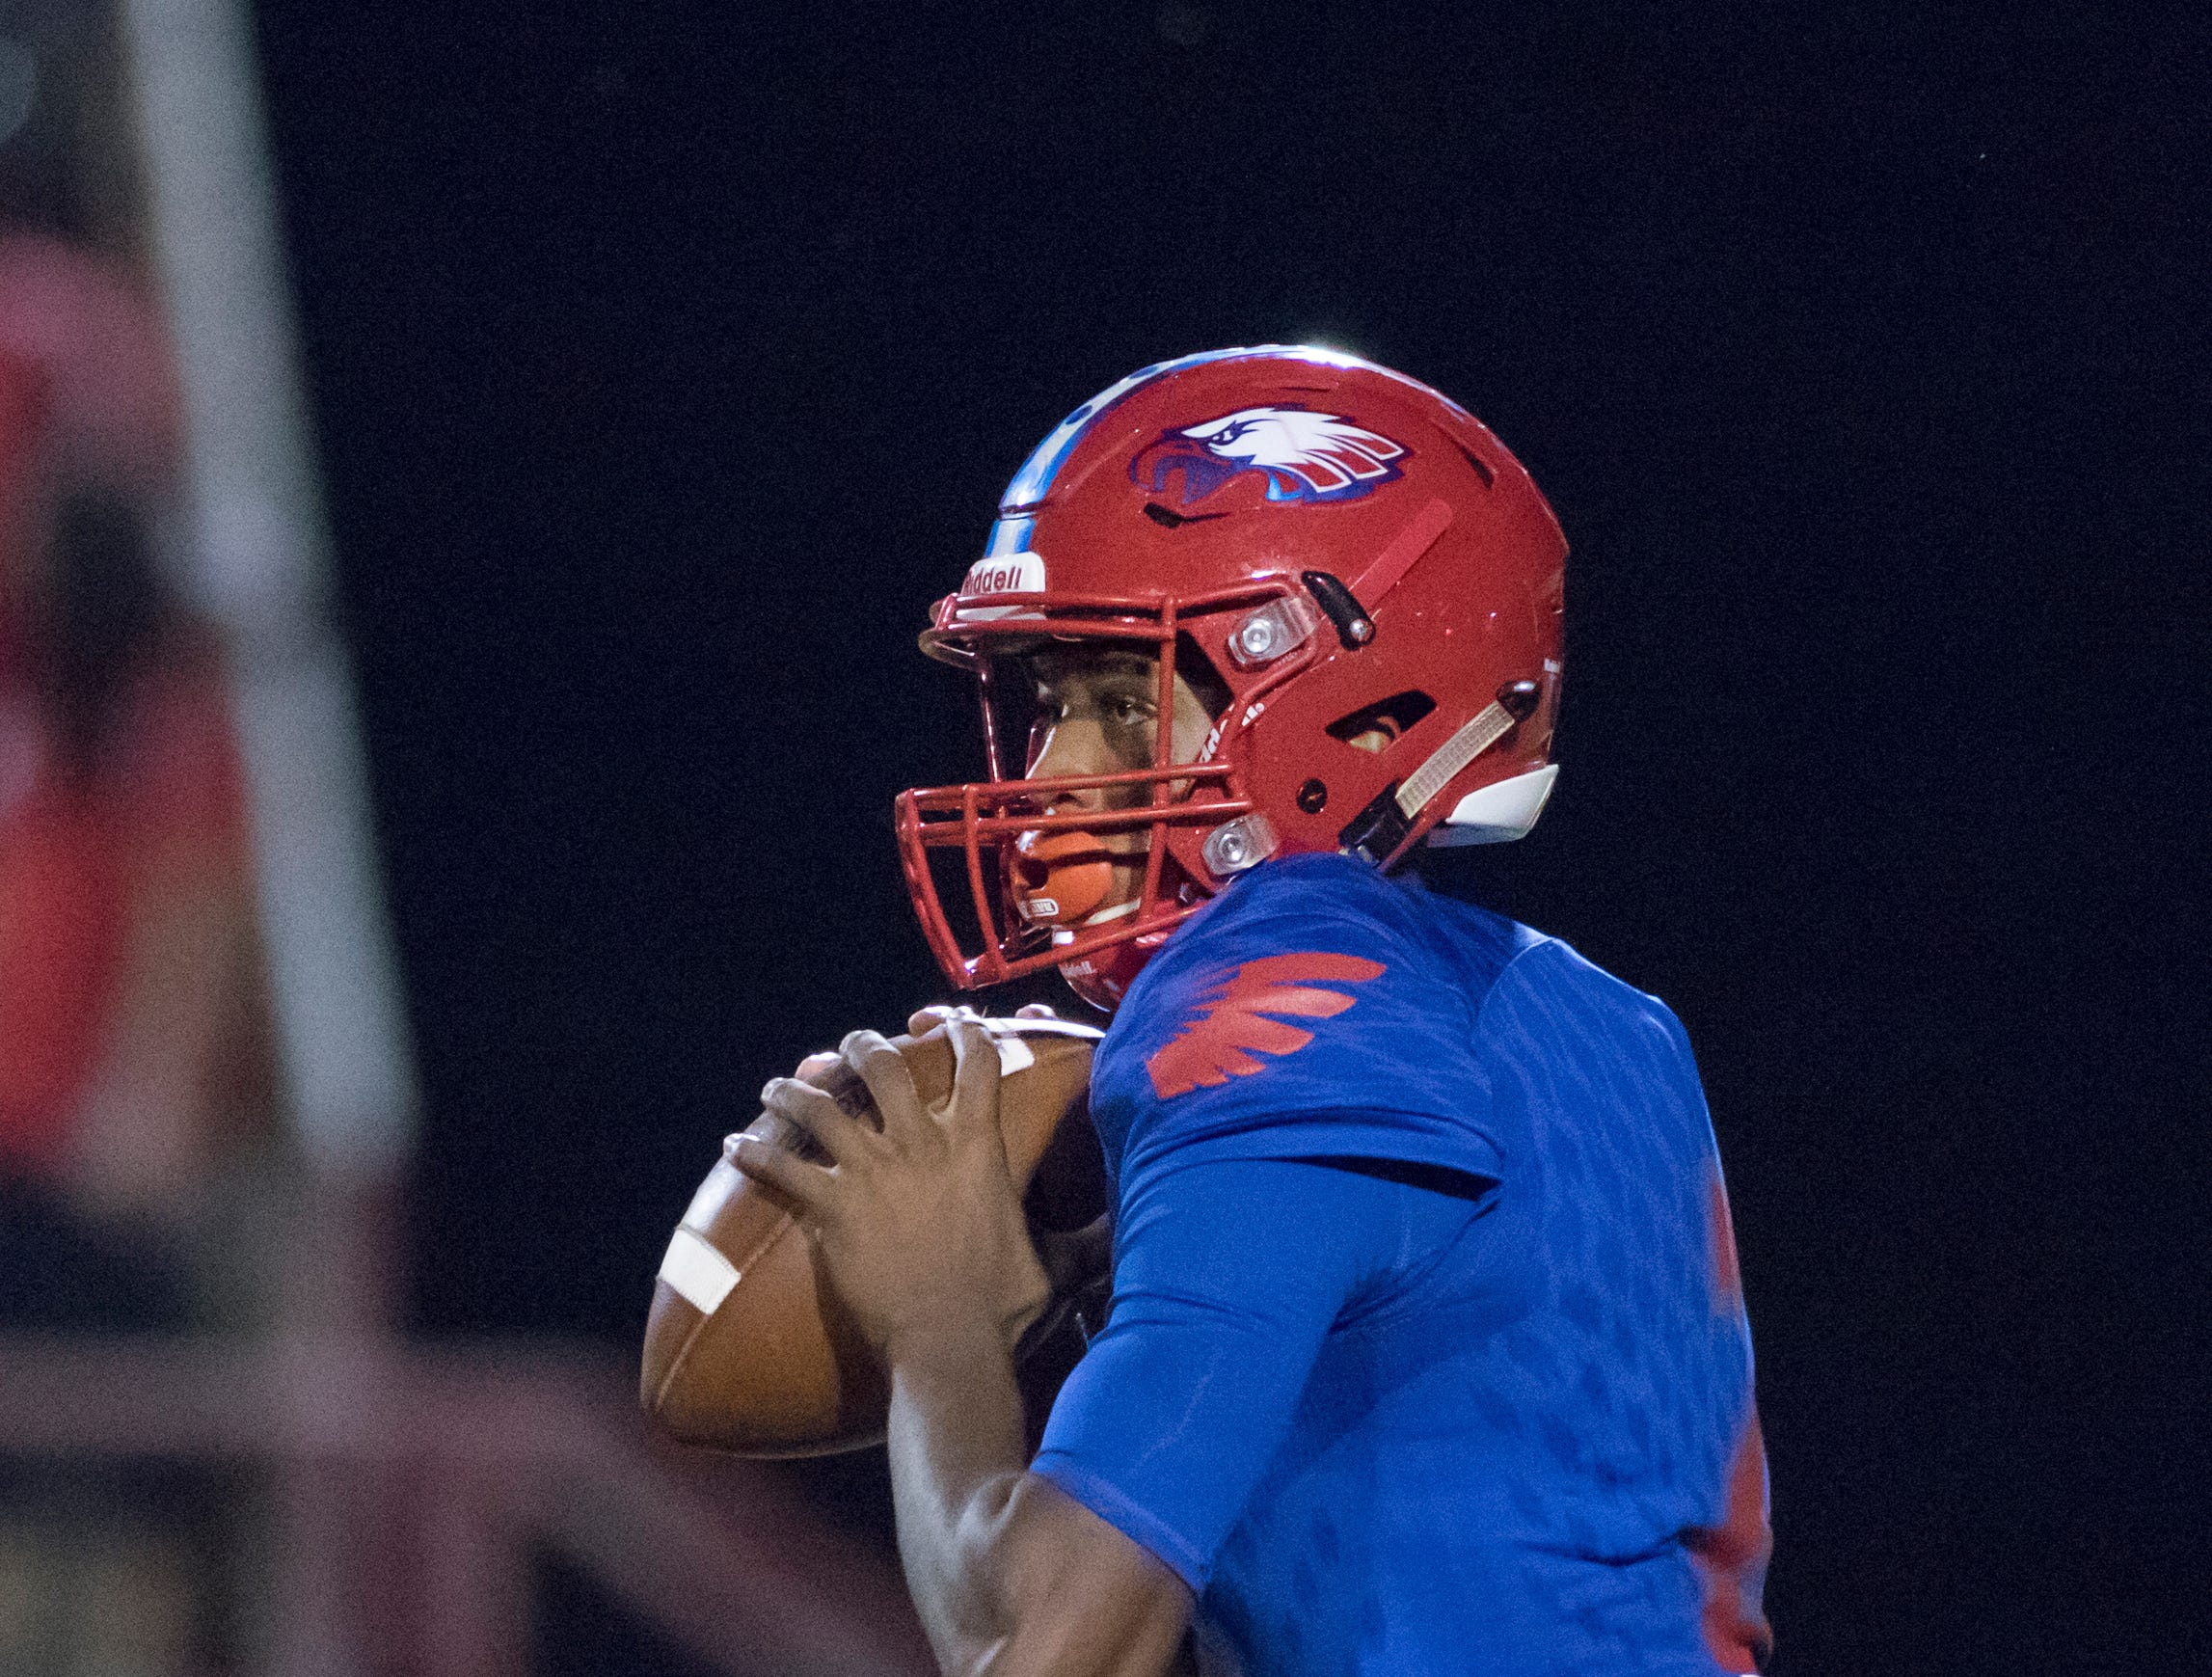 Quarterback Ladarius Clardy (2) looks for an open receiver during the West Florida vs Pine Forest football game at Pine Forest High School in Pensacola on Friday, October 5, 2018.